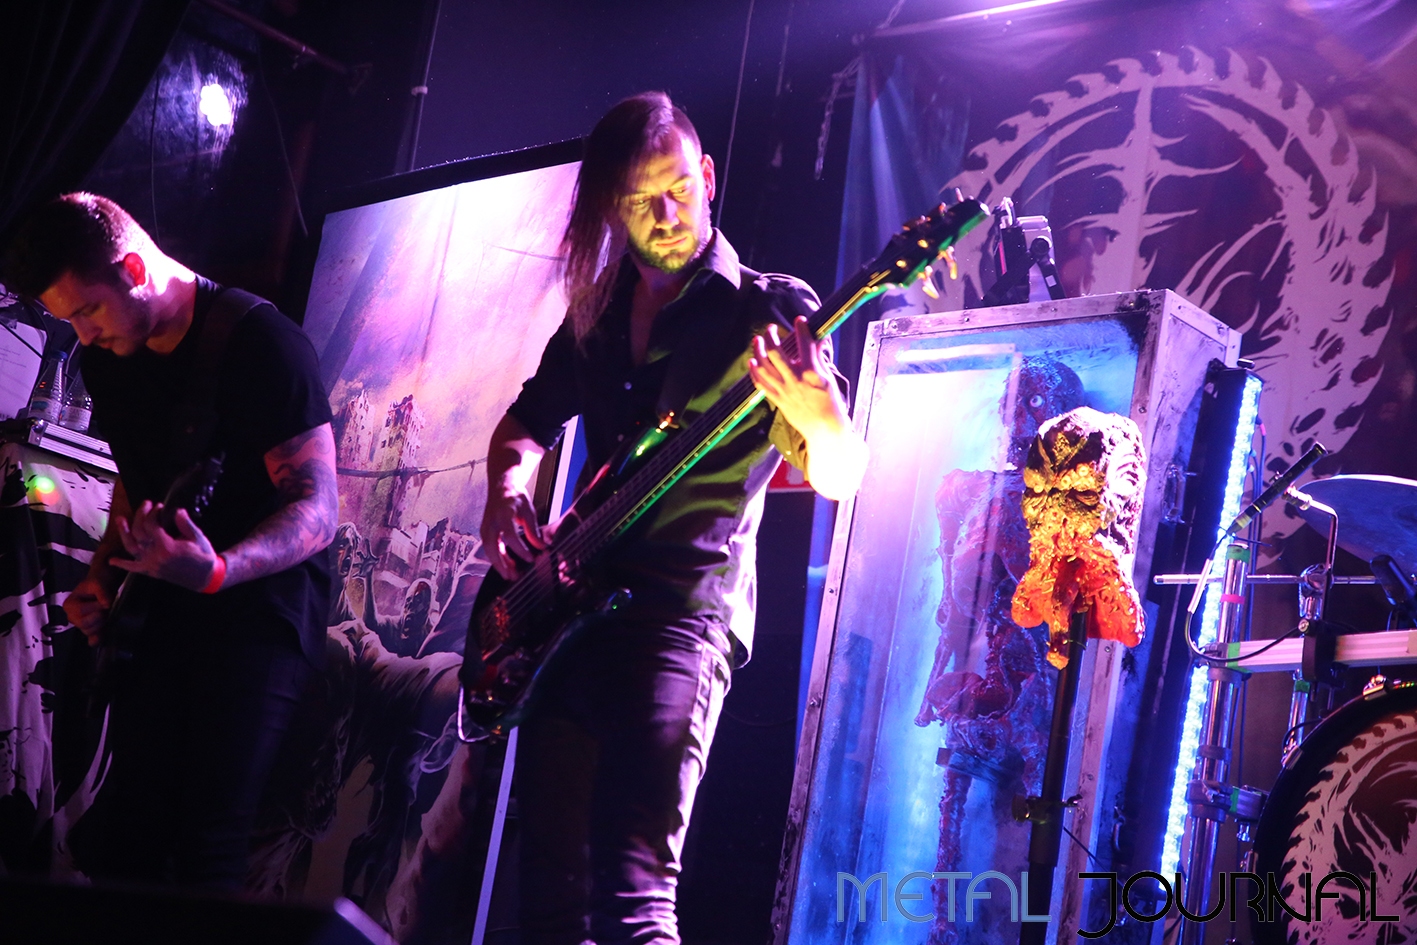 aborted - metal journal 2019 pic 6